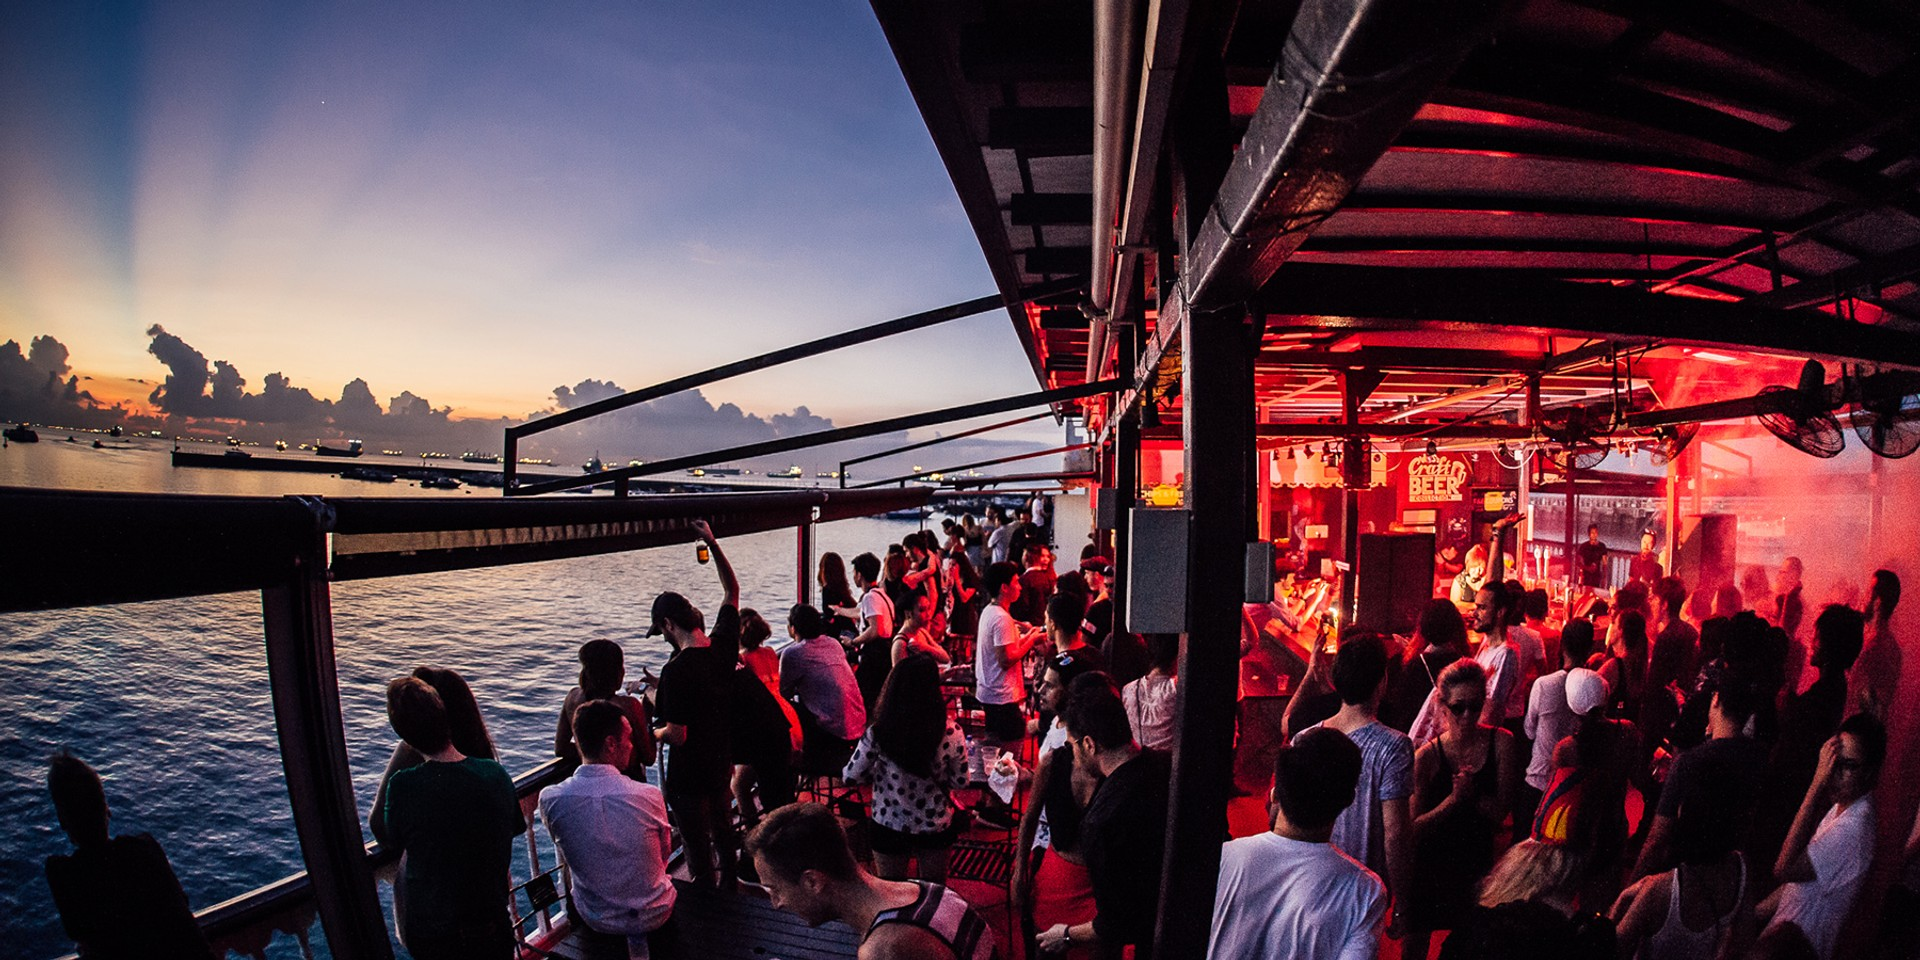 We're bringing back our overnight techno and house party on the Bandwagon Riverboat